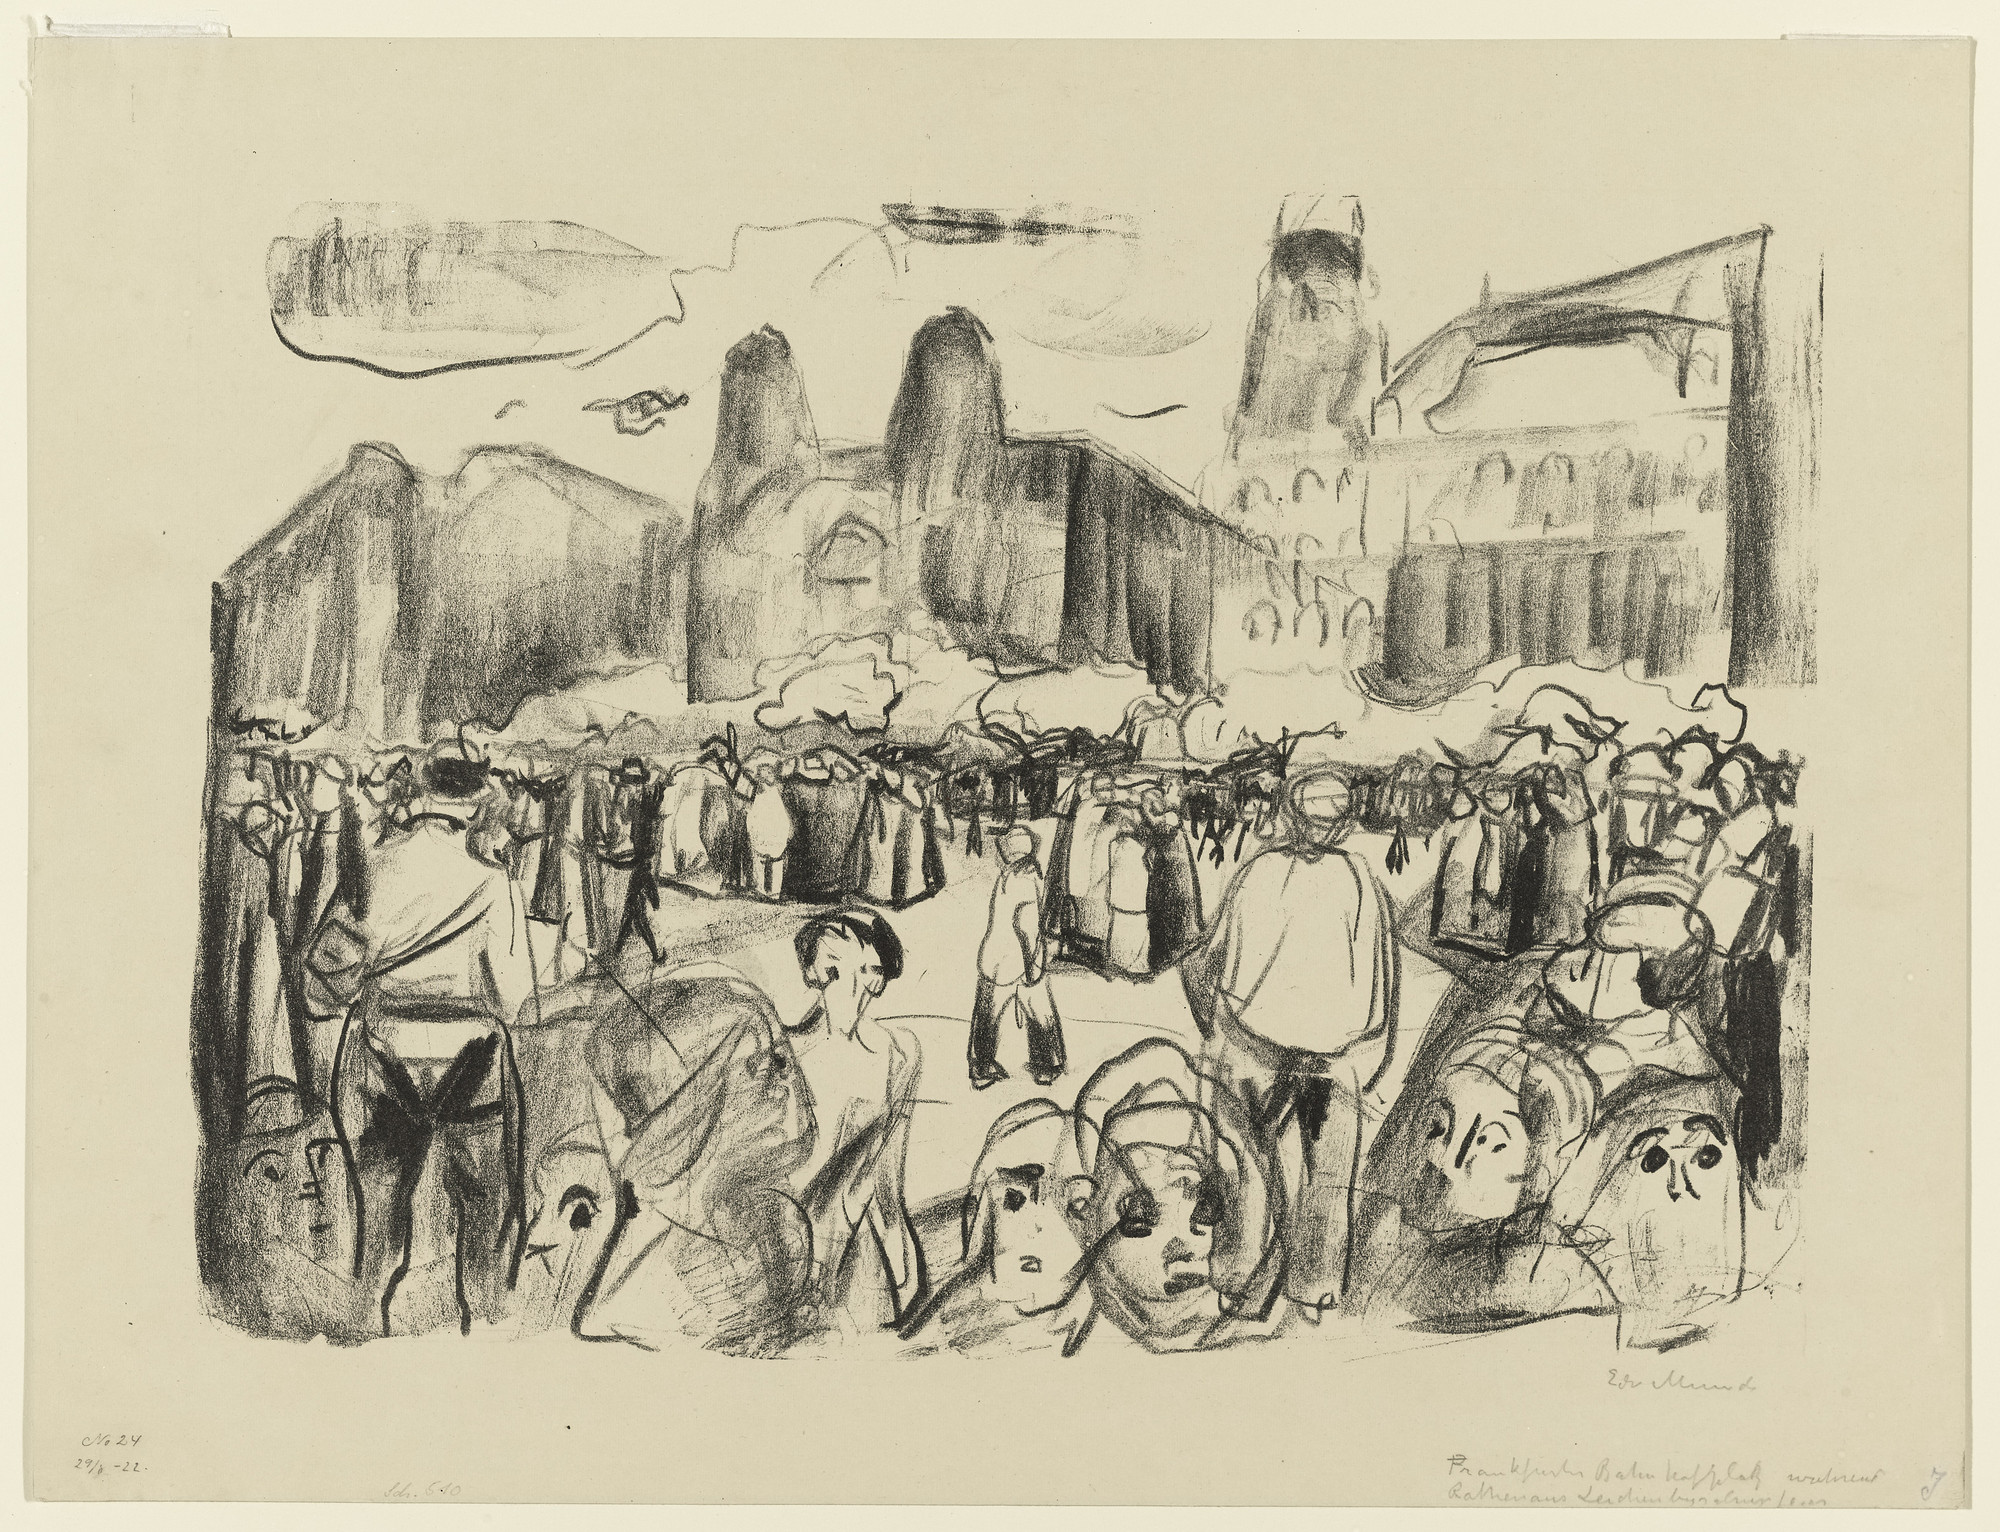 Edvard Munch. Frankfurter Bahnhofsplatz during Rathenau's Funeral. 1920